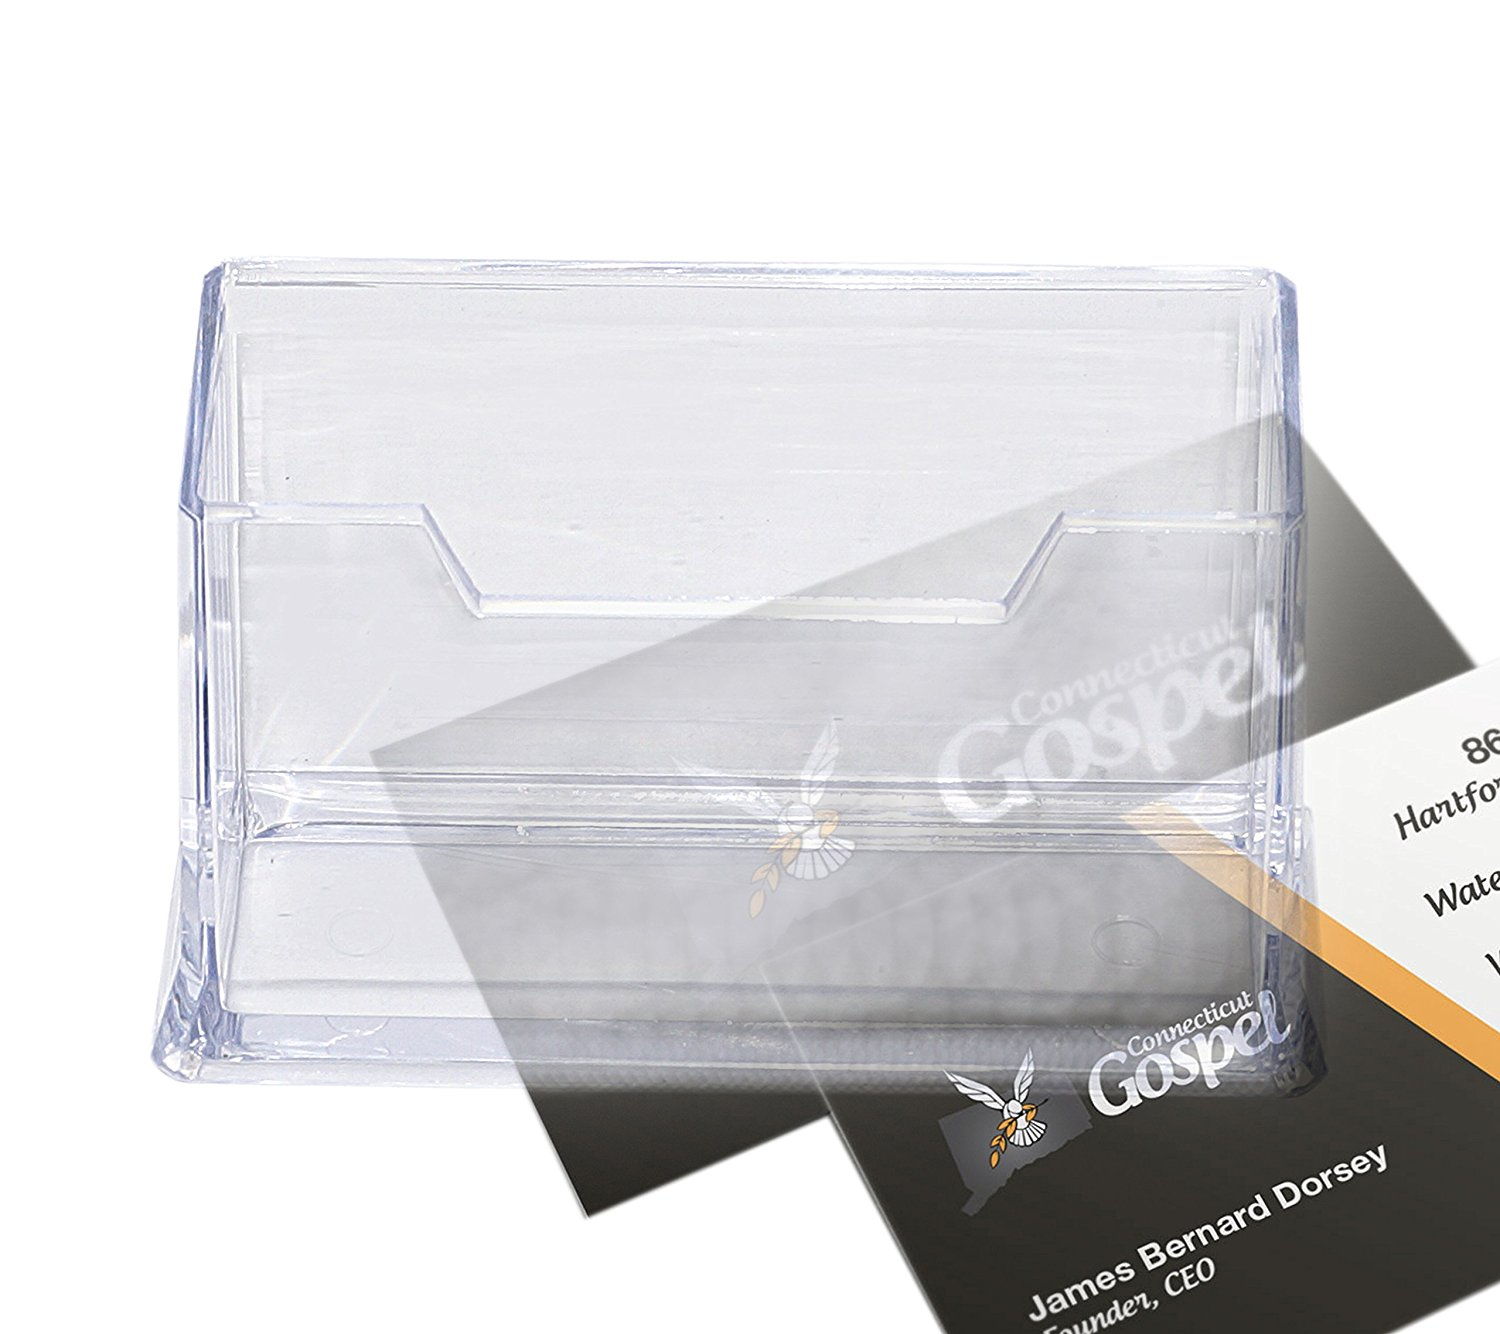 Premium Acrylic Clear Business Card Holder Display, Plastic Business ...